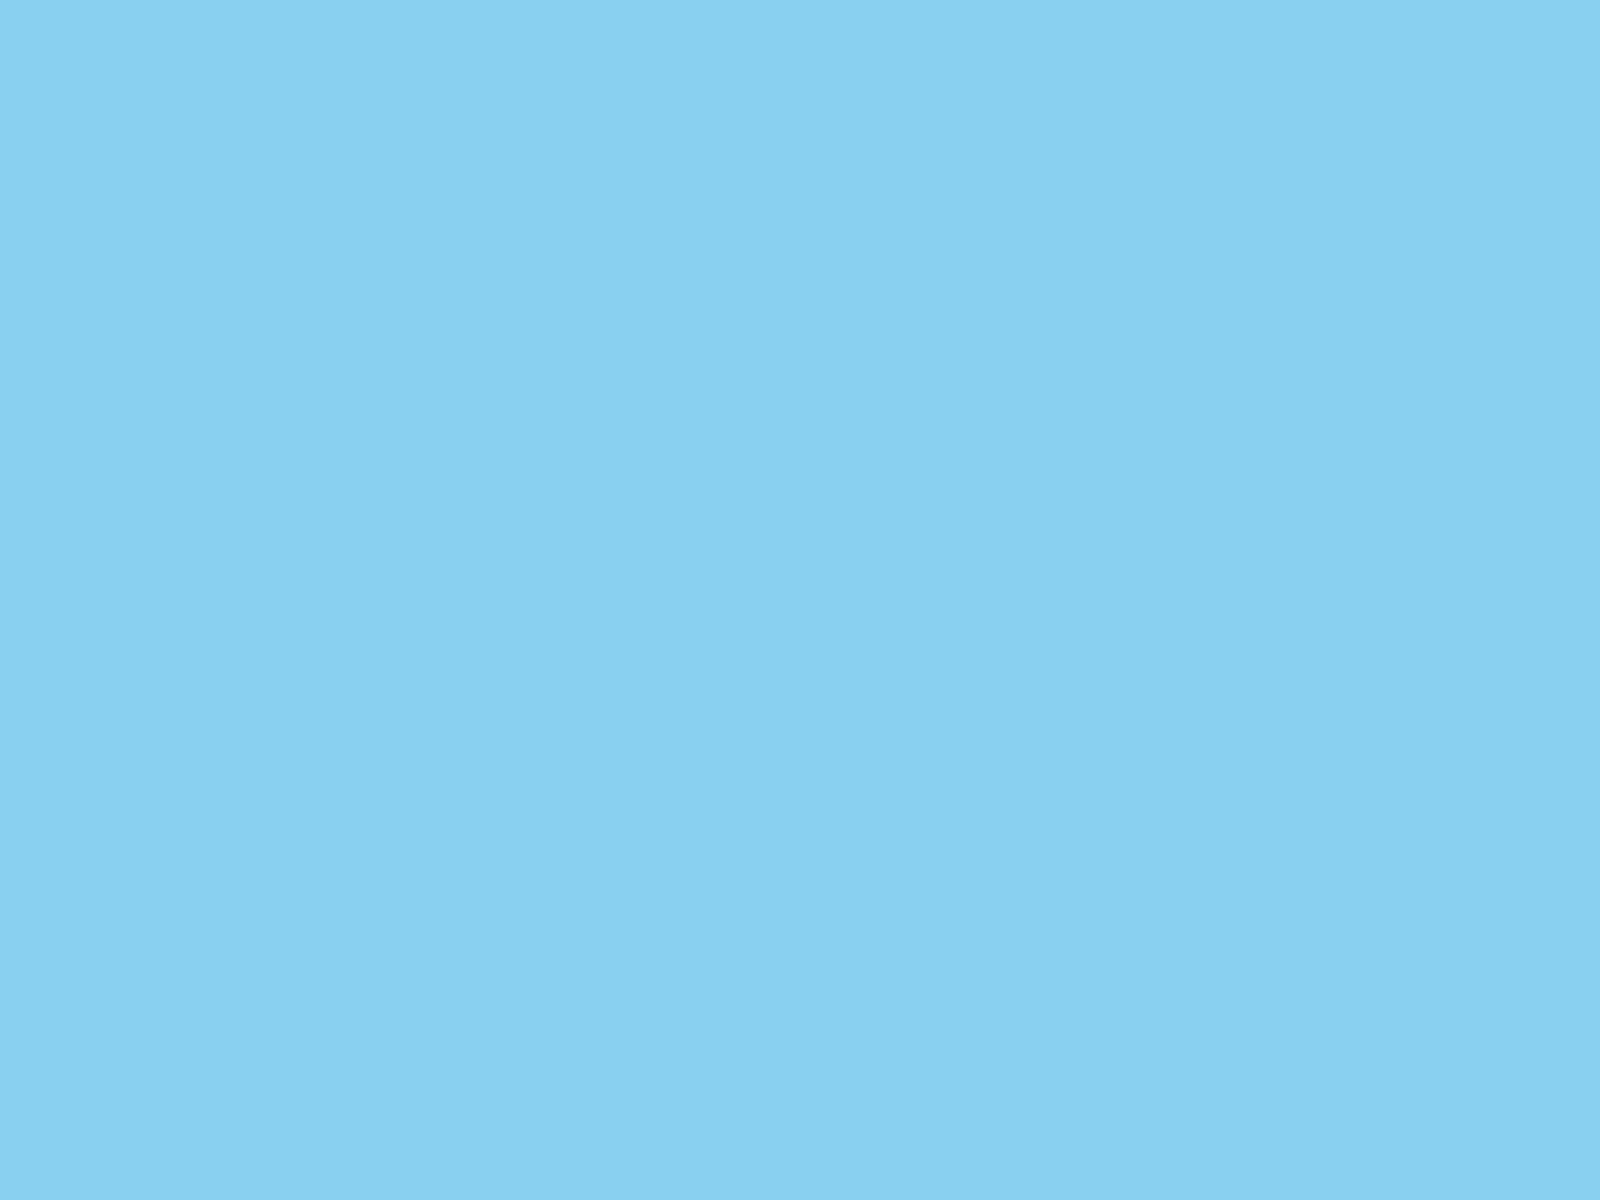 1600x1200 Baby Blue Solid Color Background